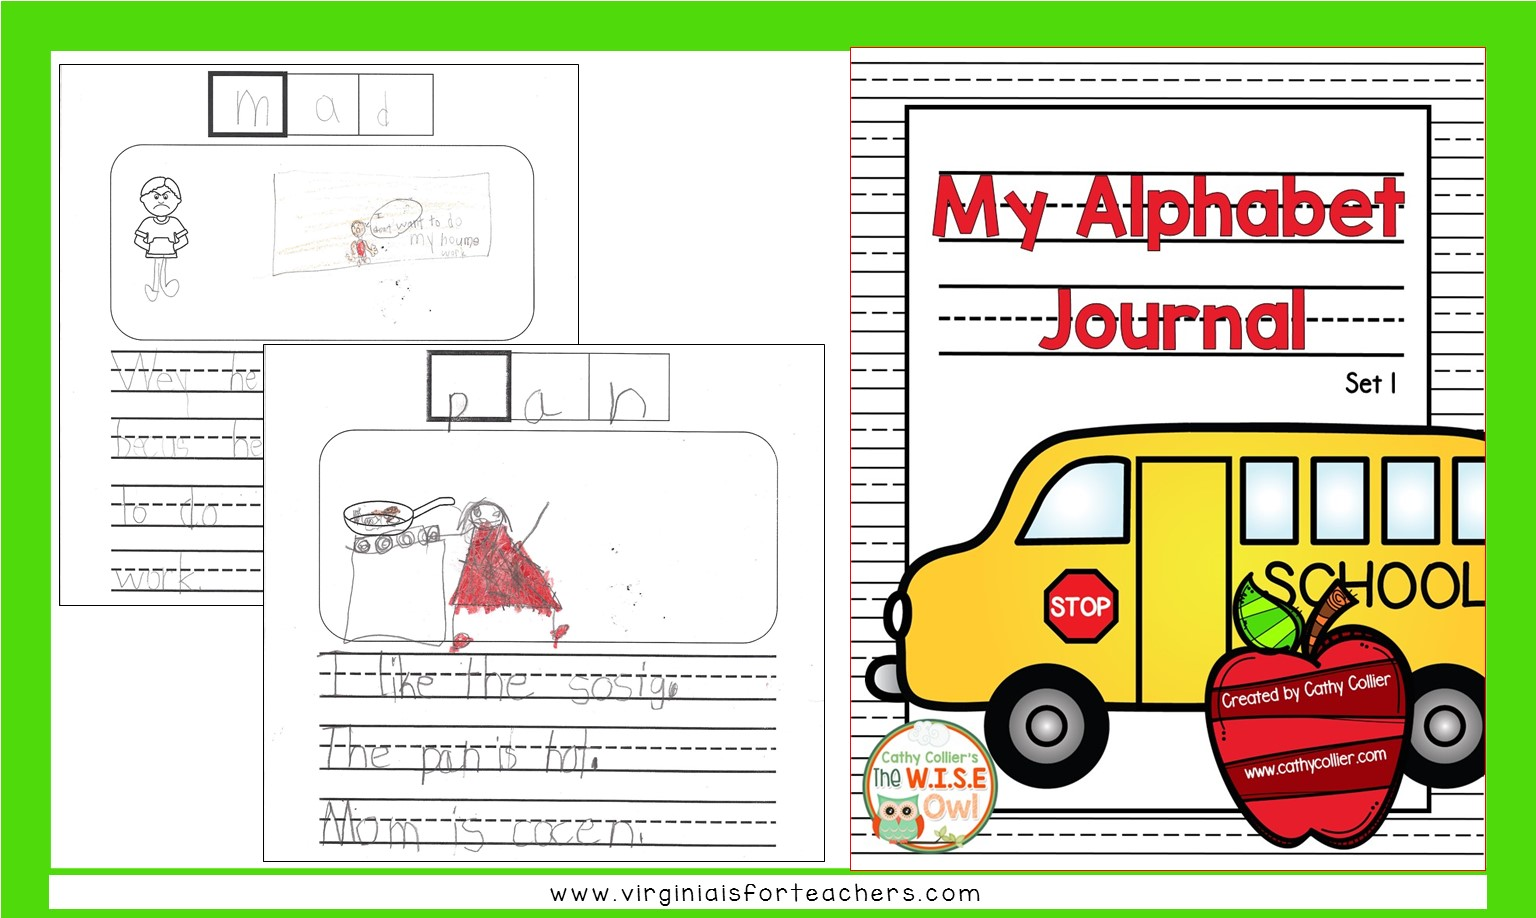 Writing can be challenging at the beginning of first grade. These journals can help students decode, create, and illustrate.